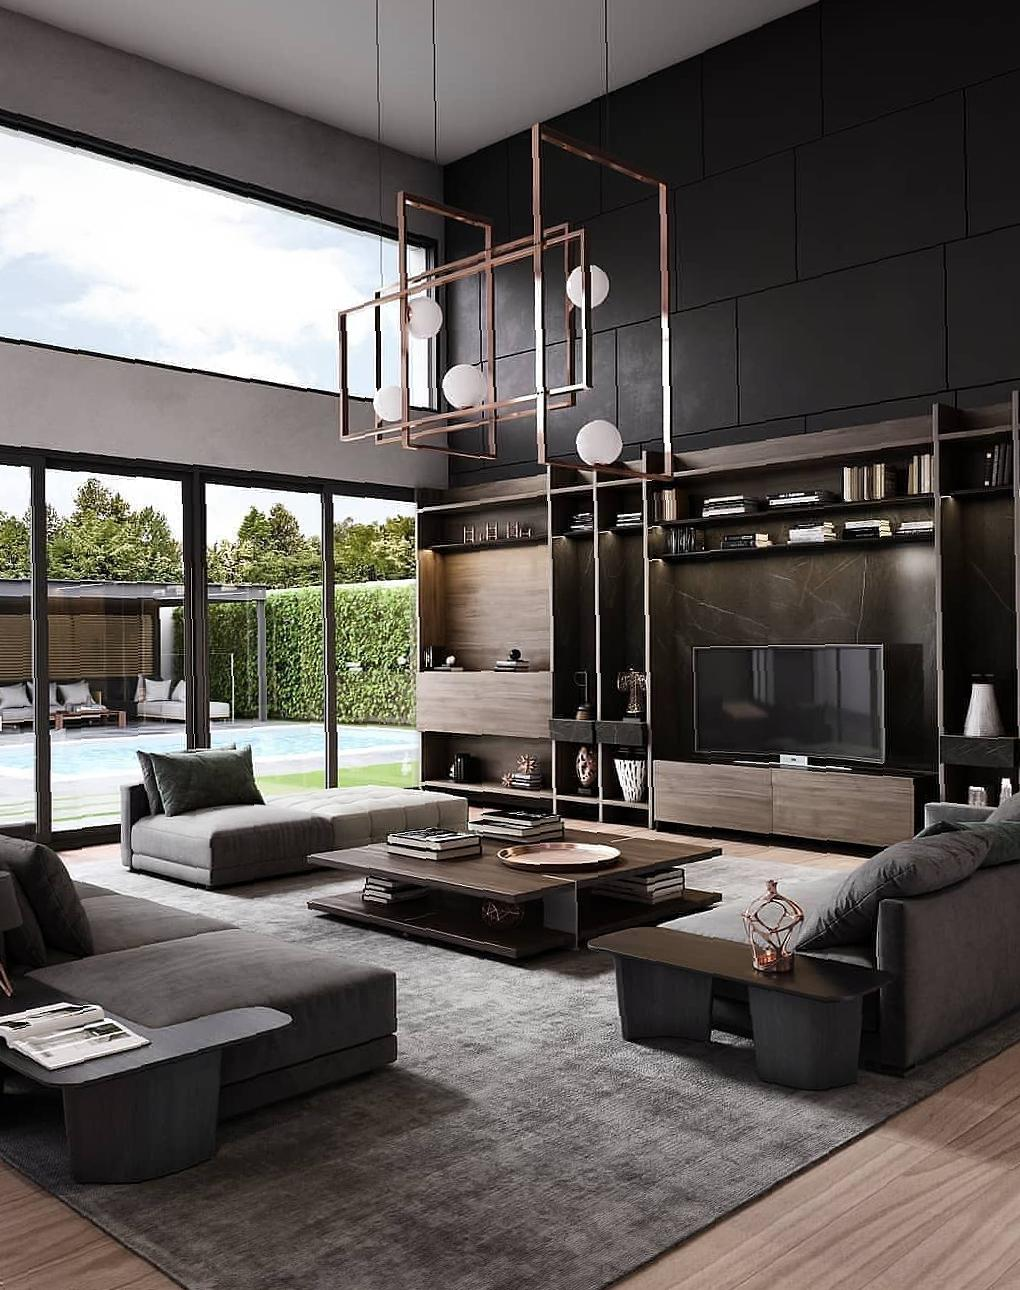 40 Loft Living Rooms That Will Blow Your Mind loft living room,modern living room,minimalism living room,industrial living room,cozy living room